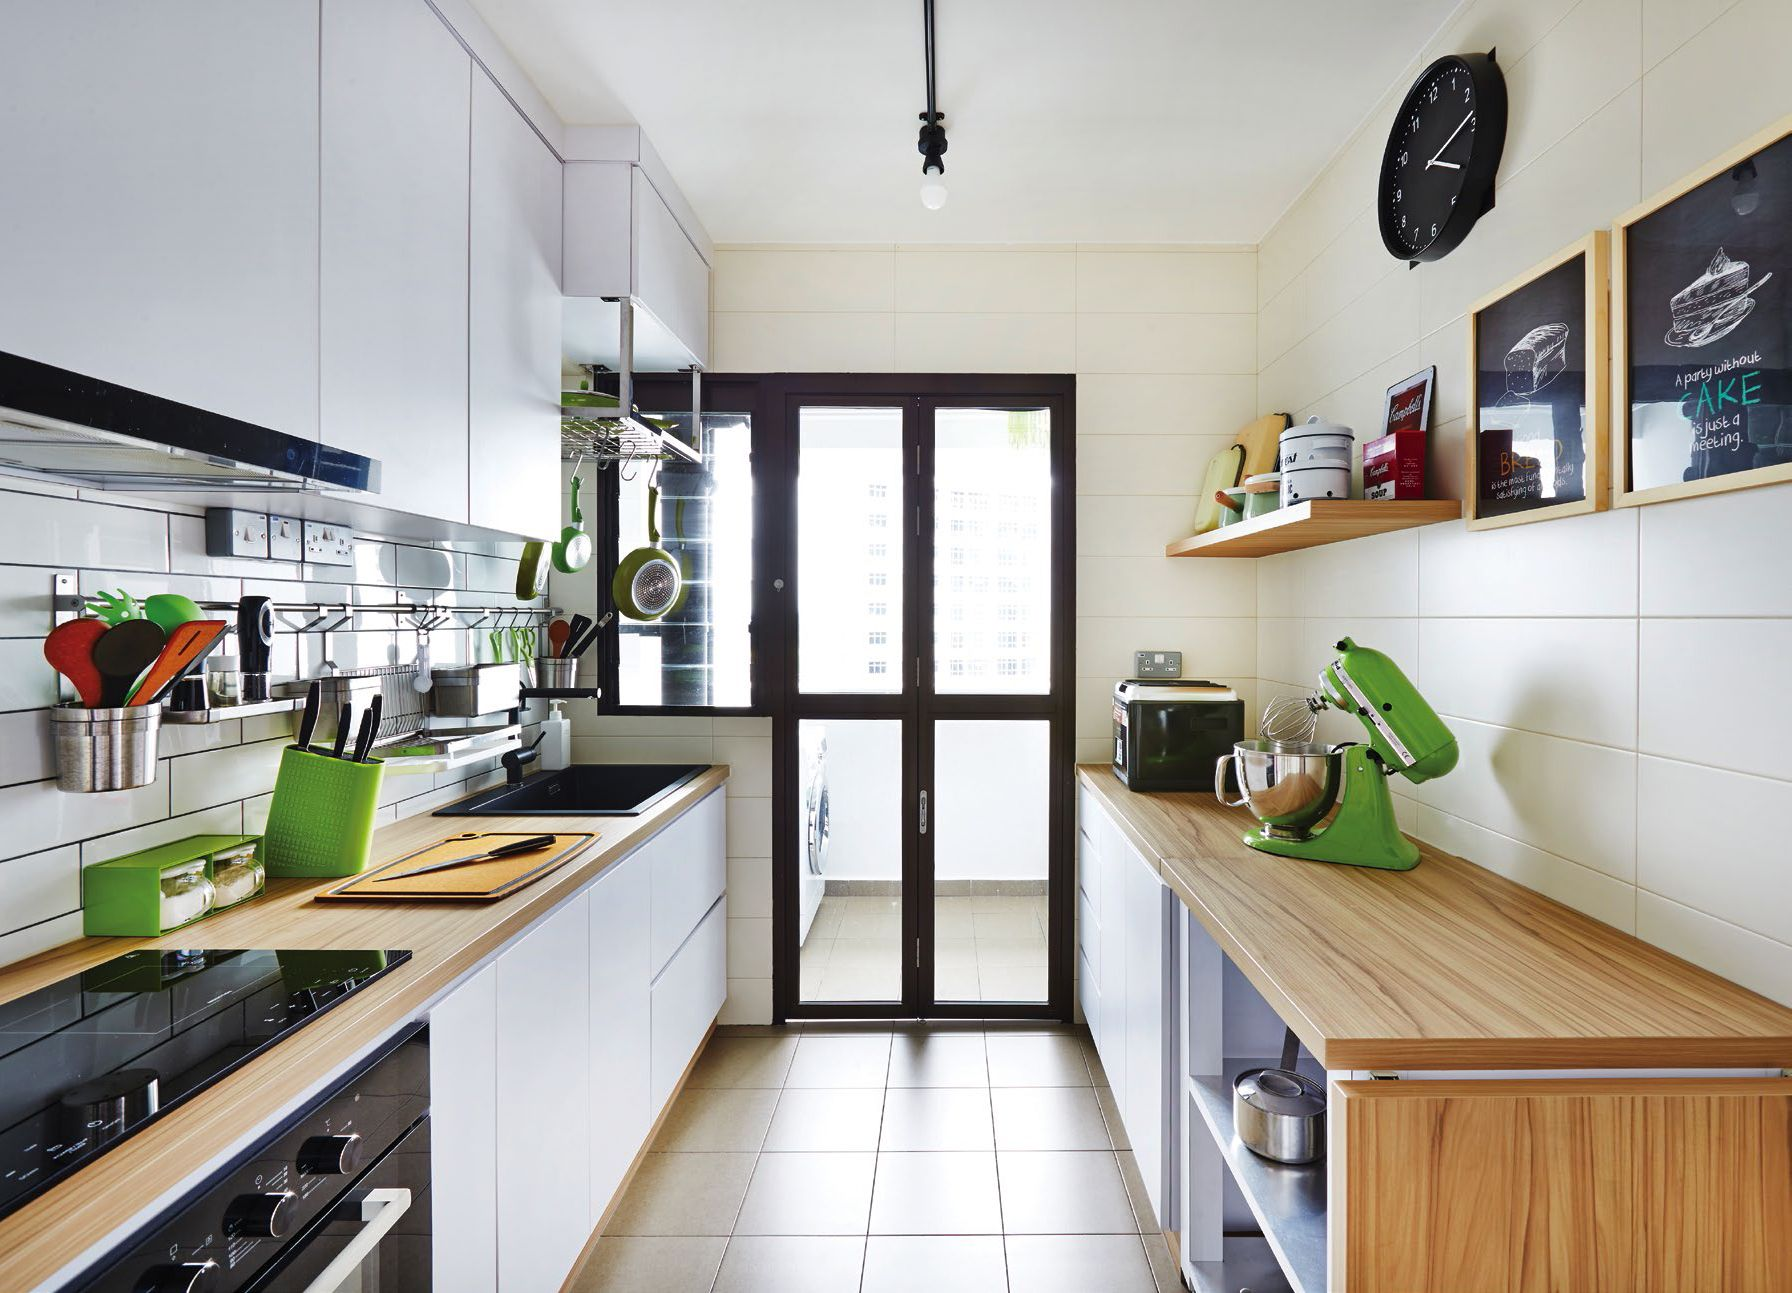 nice bright kitchen note important to be very bright for cooking will need more lights esp on kitchen ideas singapore id=86203